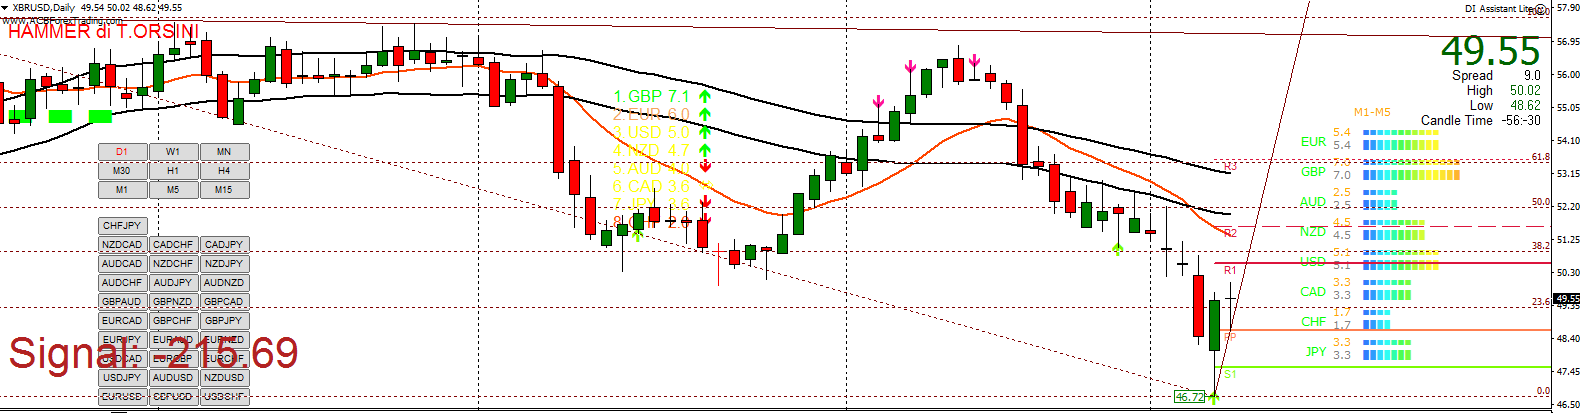 Tecnica forex time frame daily